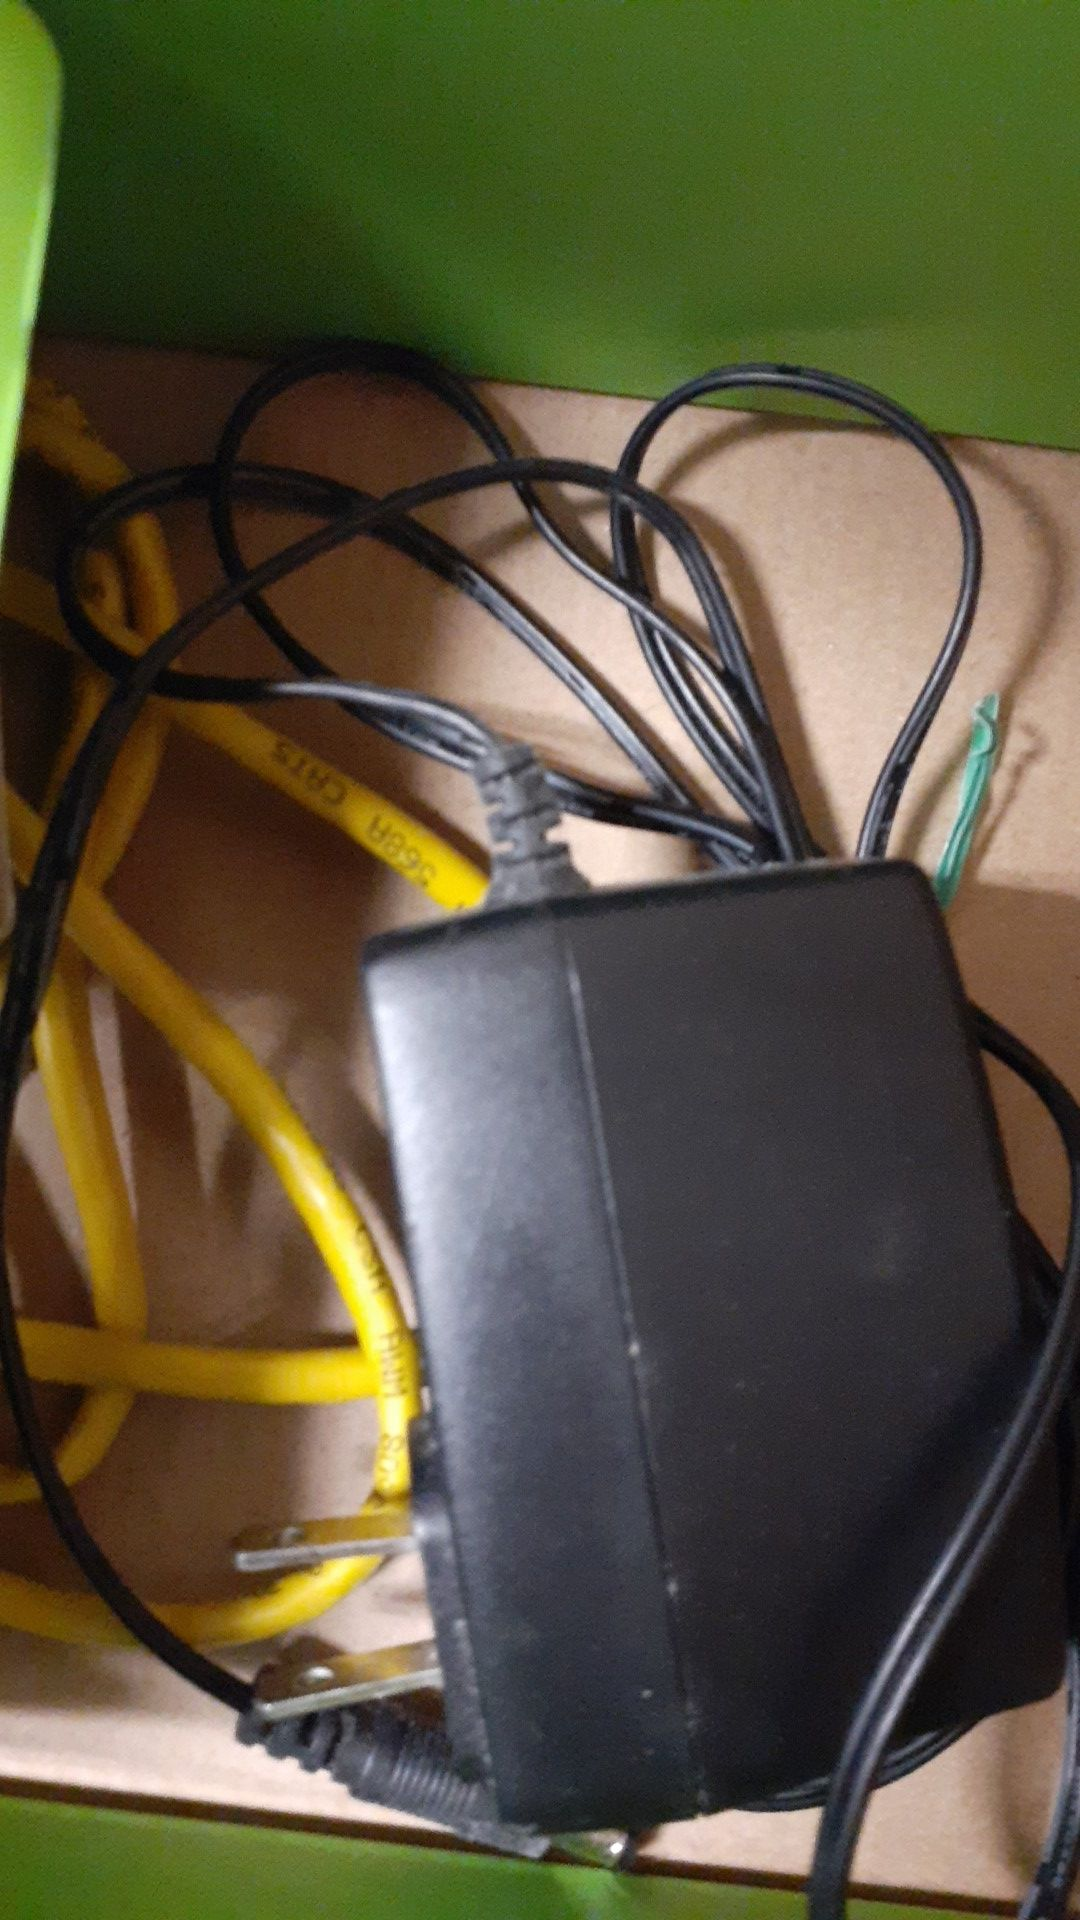 Clear 2 n 1 modem and Router